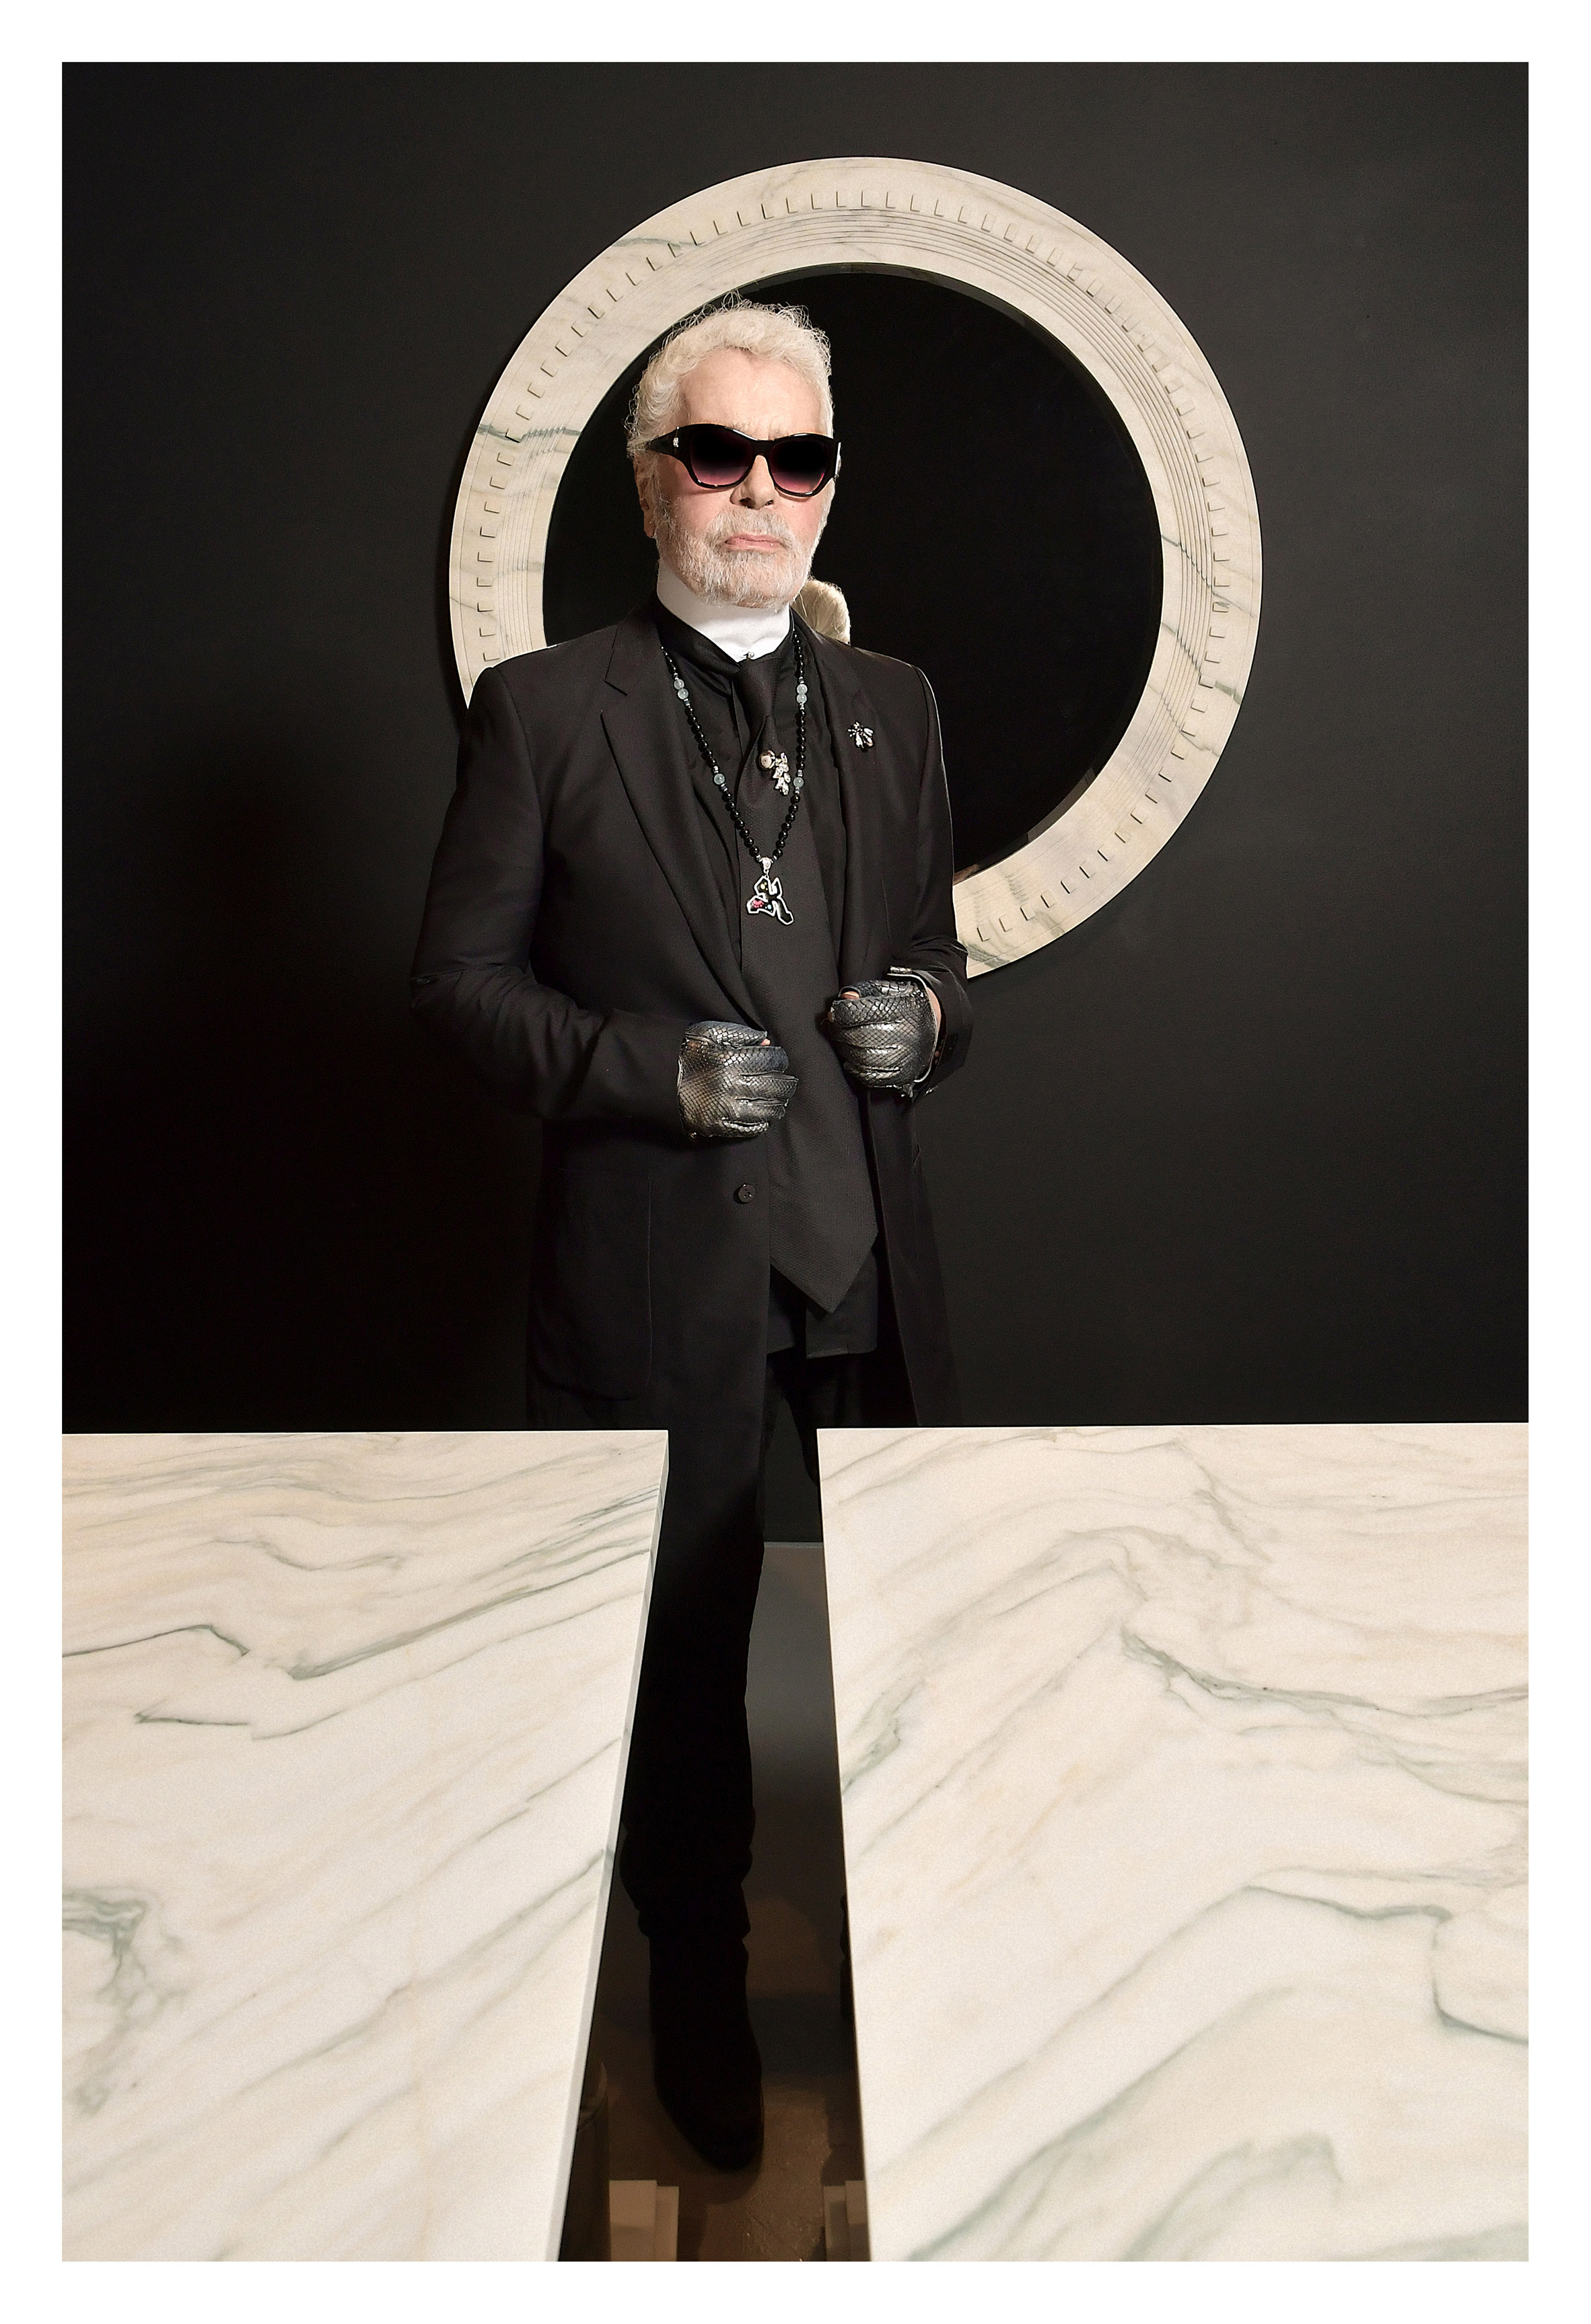 Karl-Lagerfeld-Carpenters-Workshop_dezeen_2364_col_2.jpg